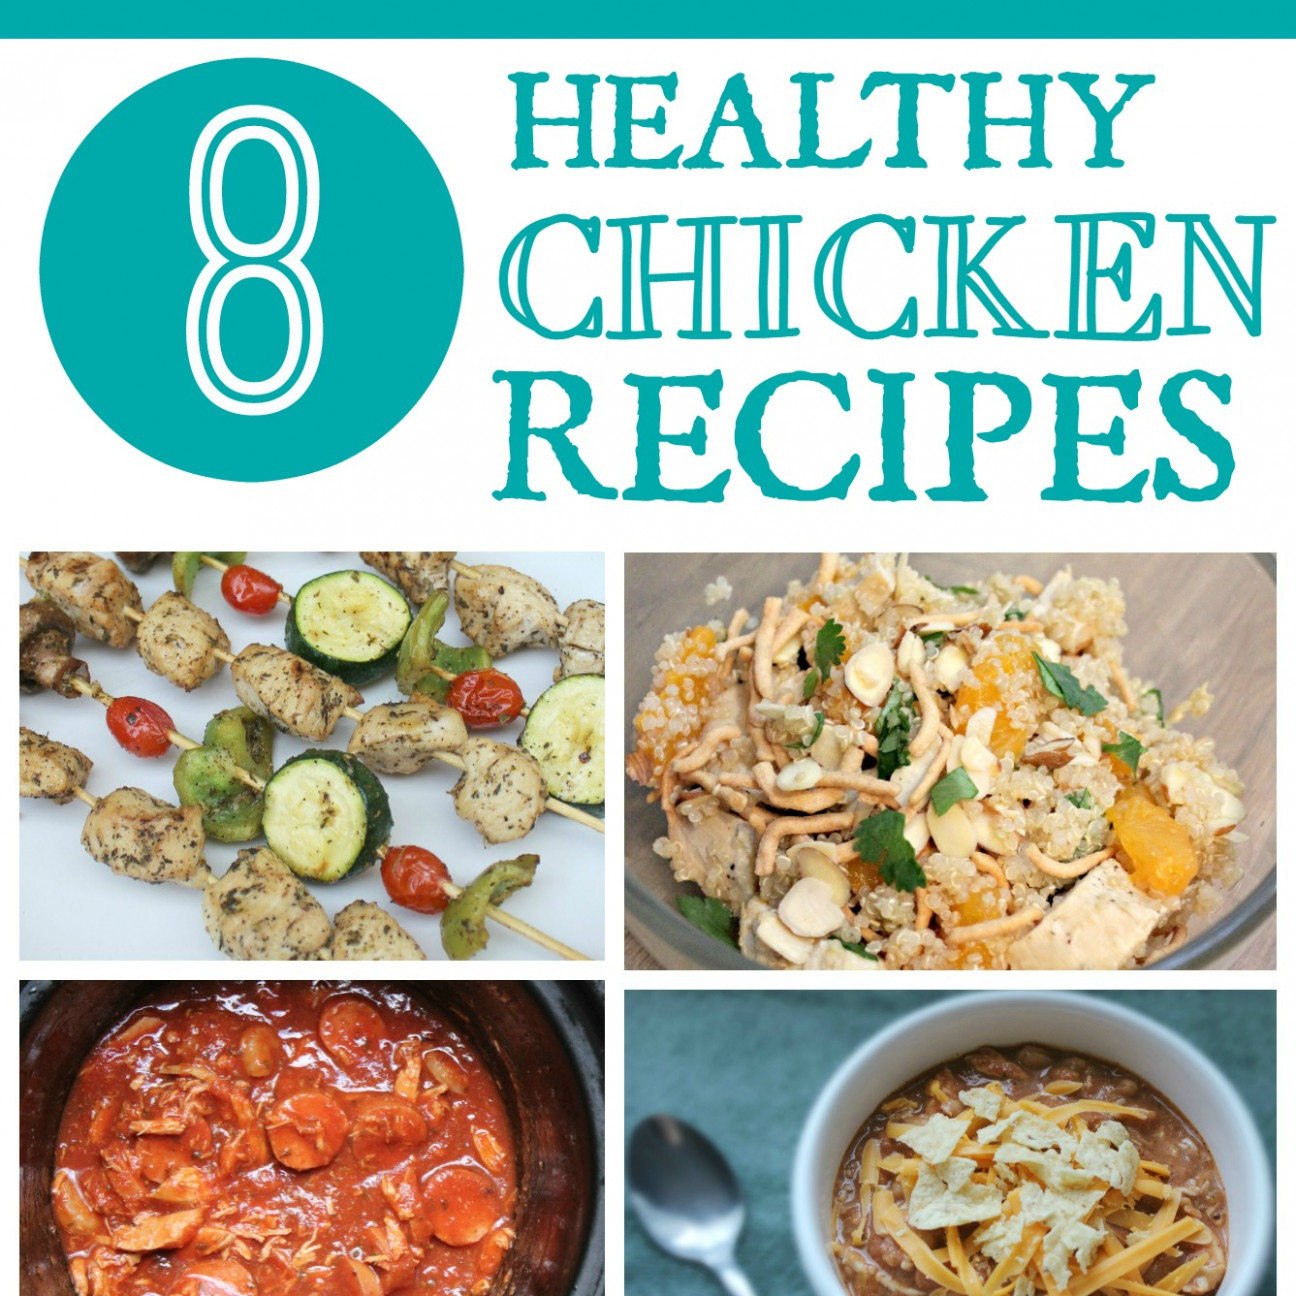 Recipe Roundup: 8 Healthy Chicken Recipes